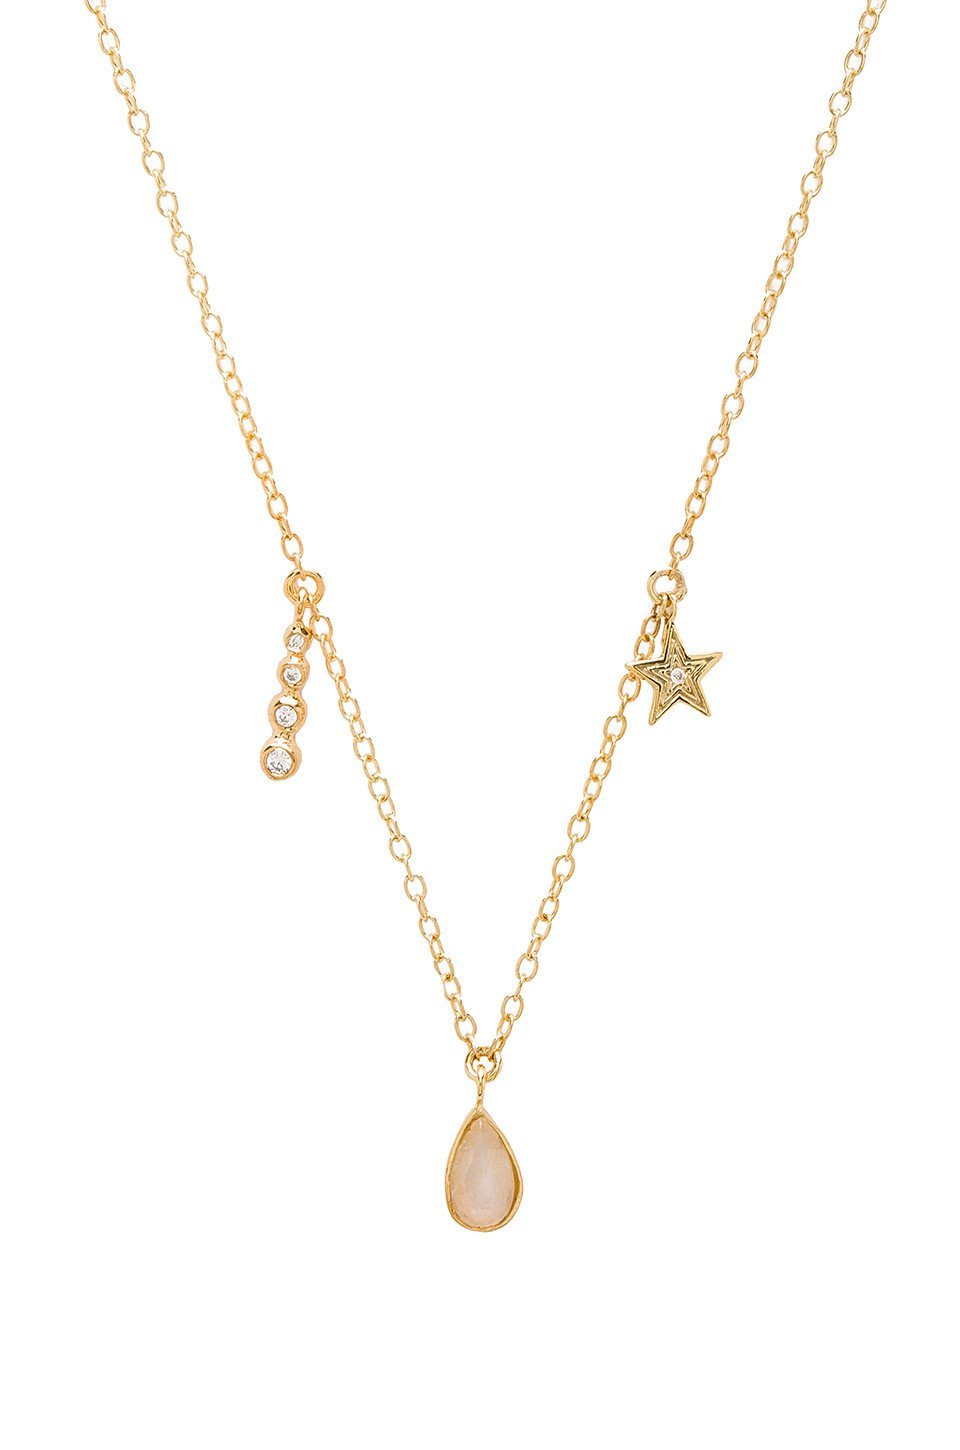 Moonstone Teardrop Necklace - Kustom Label - 1